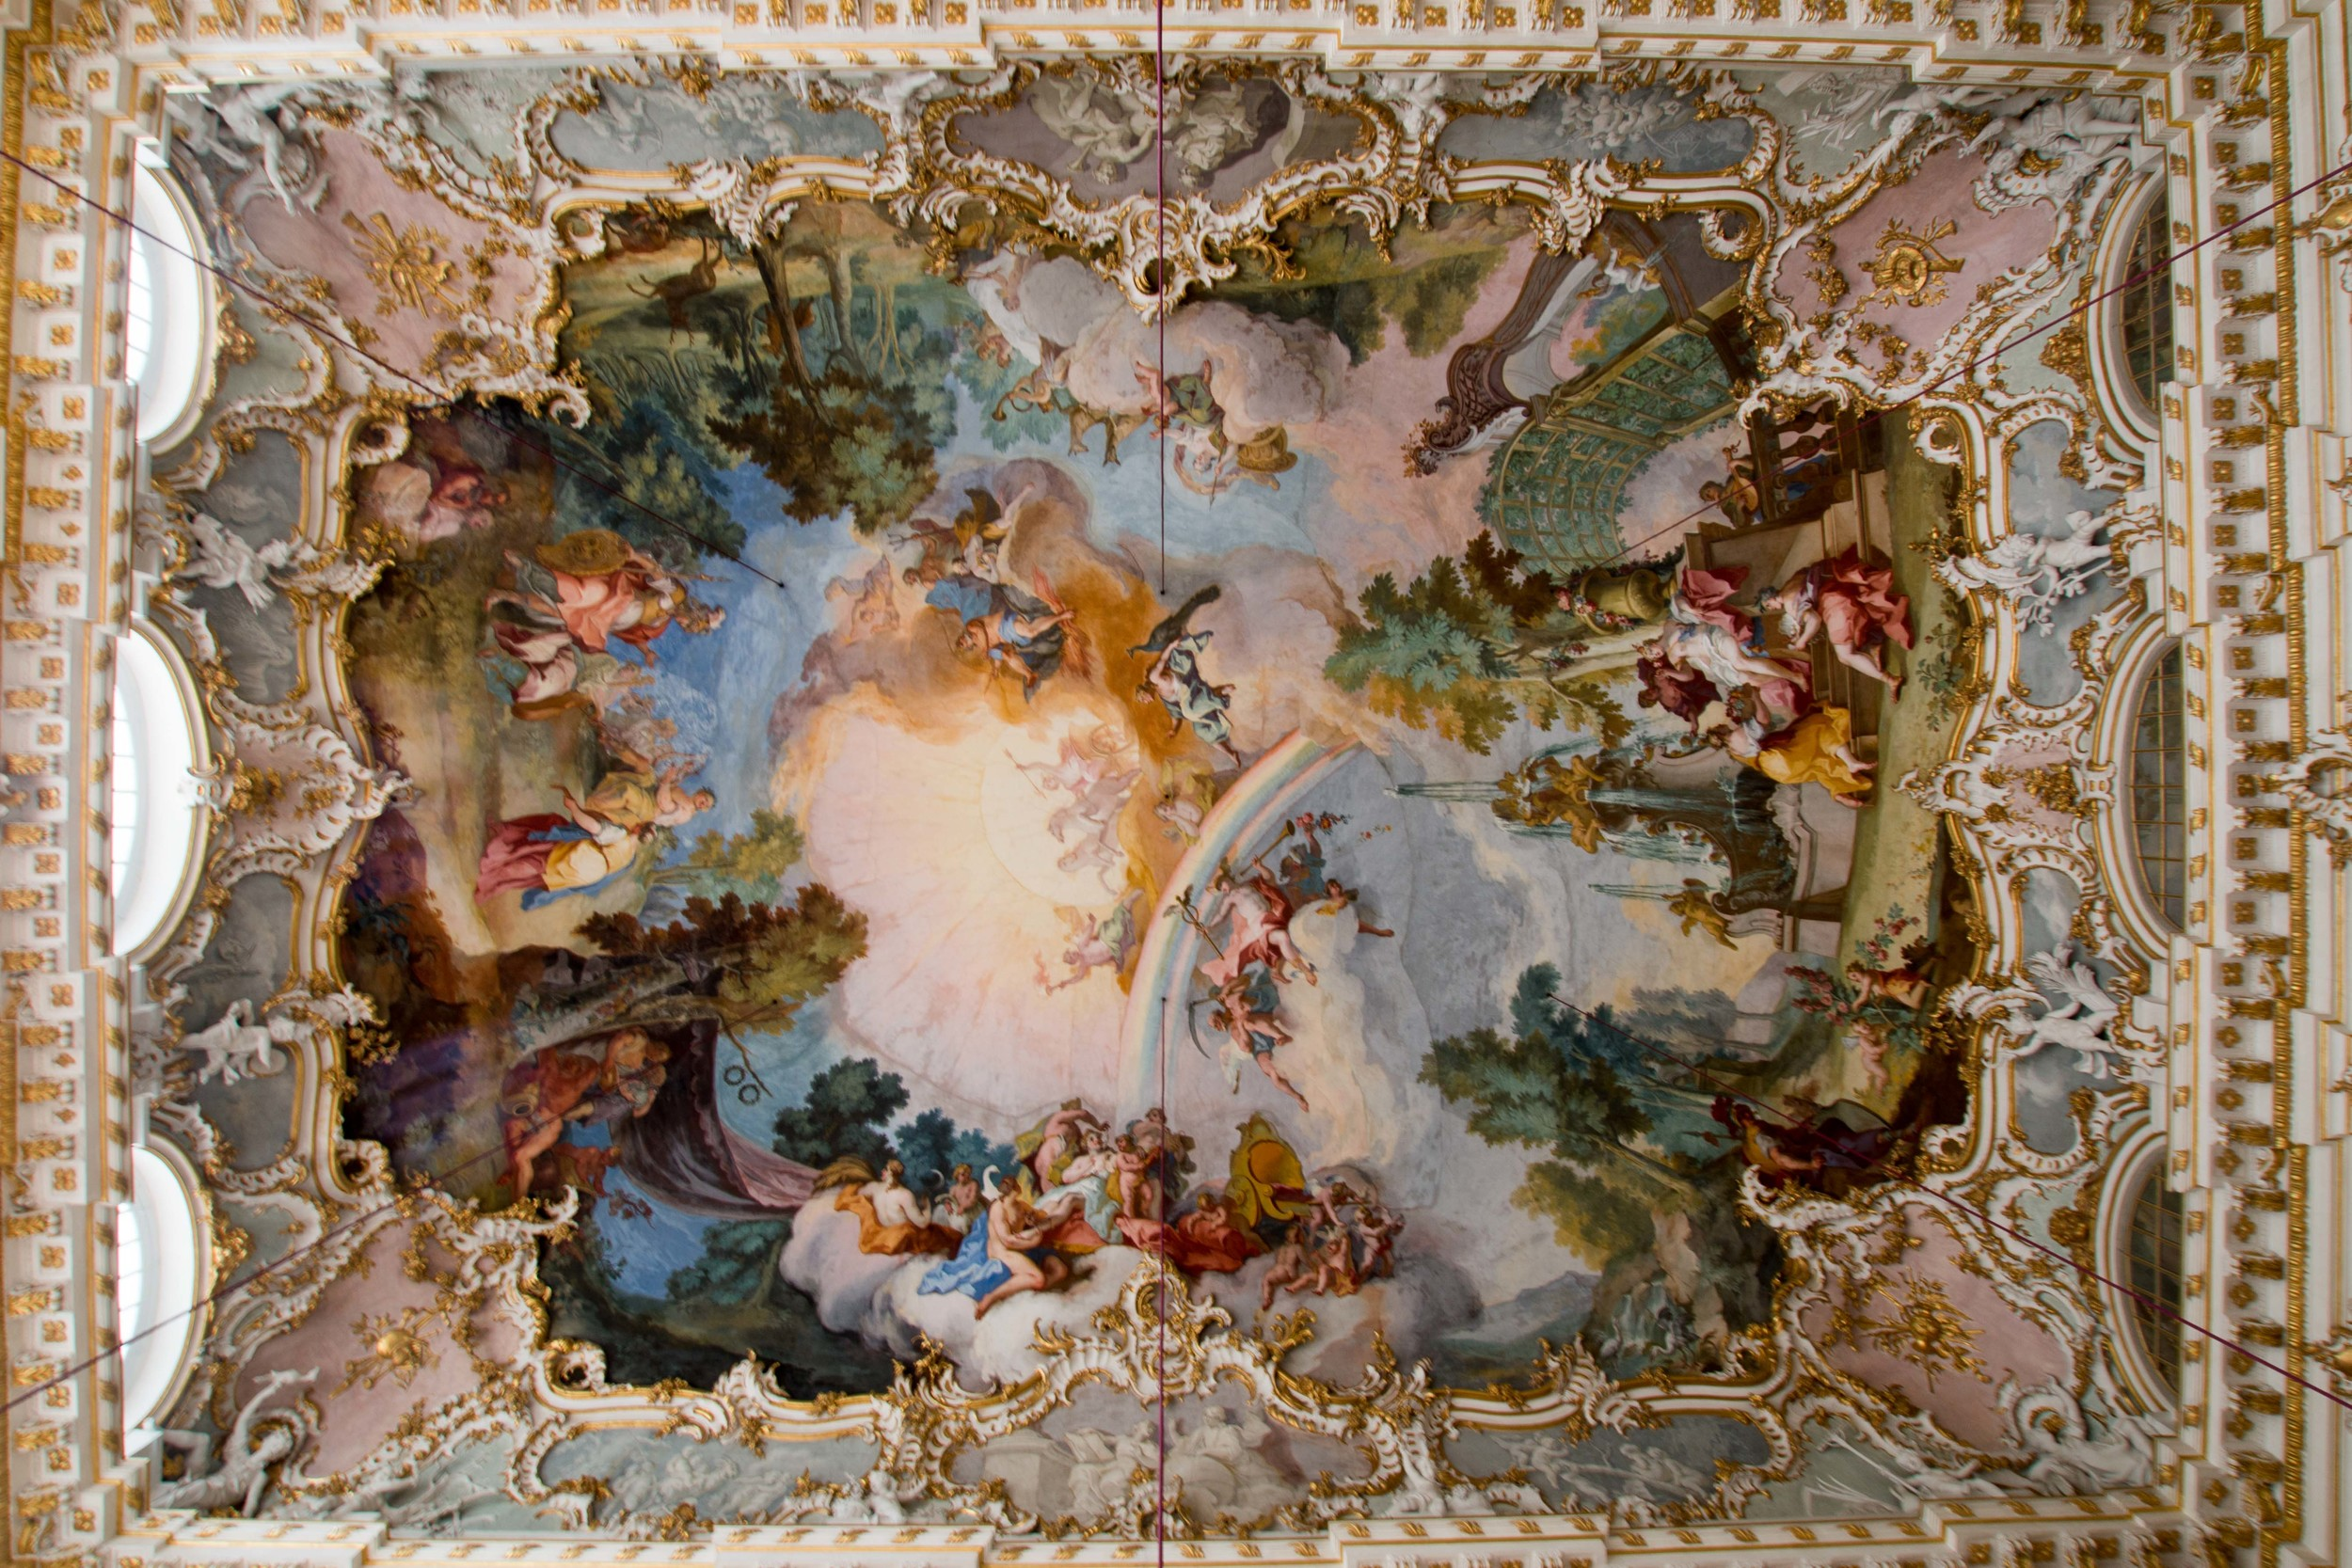 painting on the ceiling of the great hall